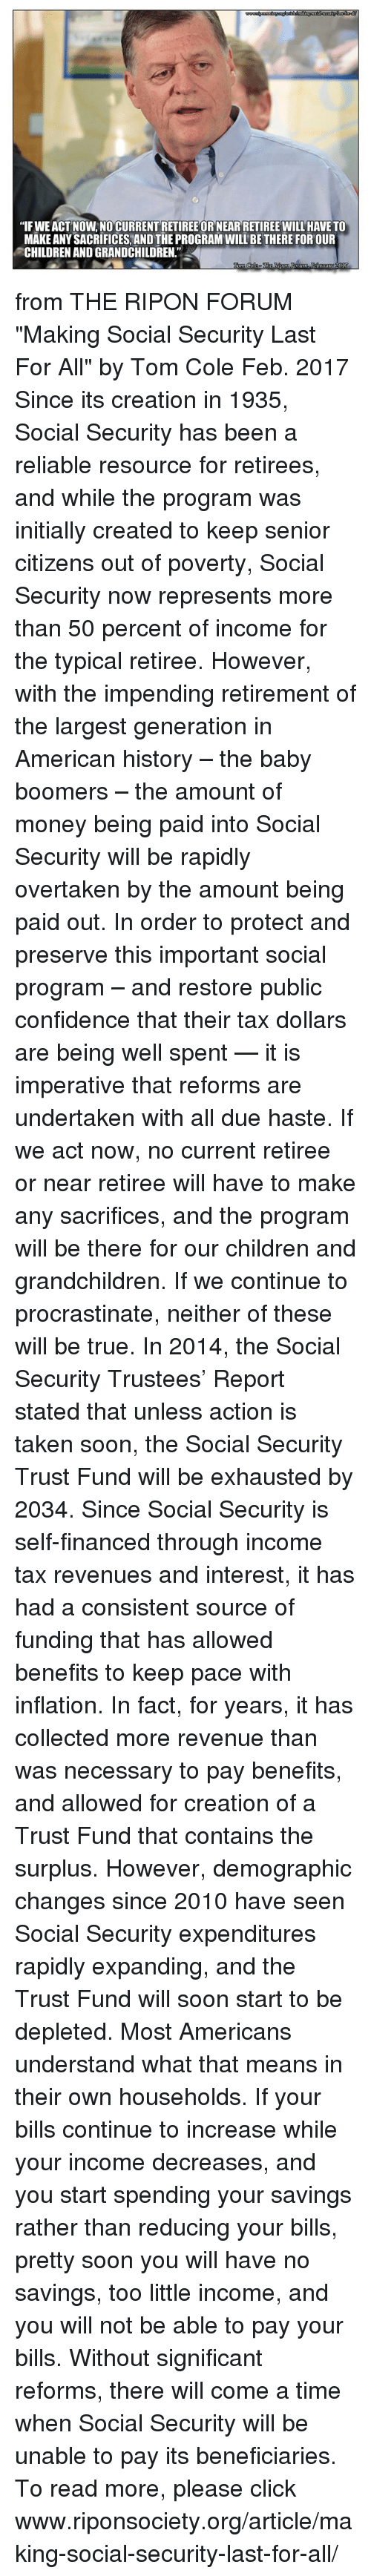 """initiation: """"IFWEACT NOW NO CURRENTRETIREE OR NEARRETIREE WILL HAVE TO  MAKE ANY SACRIFICES, AND THE PROGRAM WILL BETHERE FOR OUR  CHILDRENANDGRANDCHILDREN""""  Lorri from THE RIPON FORUM """"Making Social Security Last For All"""" by Tom Cole Feb. 2017  Since its creation in 1935, Social Security has been a reliable resource for retirees, and while the program was initially created to keep senior citizens out of poverty, Social Security now represents more than 50 percent of income for the typical retiree.  However, with the impending retirement of the largest generation in American history – the baby boomers – the amount of money being paid into Social Security will be rapidly overtaken by the amount being paid out.  In order to protect and preserve this important social program – and restore public confidence that their tax dollars are being well spent — it is imperative that reforms are undertaken with all due haste. If we act now, no current retiree or near retiree will have to make any sacrifices, and the program will be there for our children and grandchildren. If we continue to procrastinate, neither of these will be true.  In 2014, the Social Security Trustees' Report stated that unless action is taken soon, the Social Security Trust Fund will be exhausted by 2034. Since Social Security is self-financed through income tax revenues and interest, it has had a consistent source of funding that has allowed benefits to keep pace with inflation. In fact, for years, it has collected more revenue than was necessary to pay benefits, and allowed for creation of a Trust Fund that contains the surplus.  However, demographic changes since 2010 have seen Social Security expenditures rapidly expanding, and the Trust Fund will soon start to be depleted.  Most Americans understand what that means in their own households. If your bills continue to increase while your income decreases, and you start spending your savings rather than reducing your bills, pretty soon you will have no sa"""